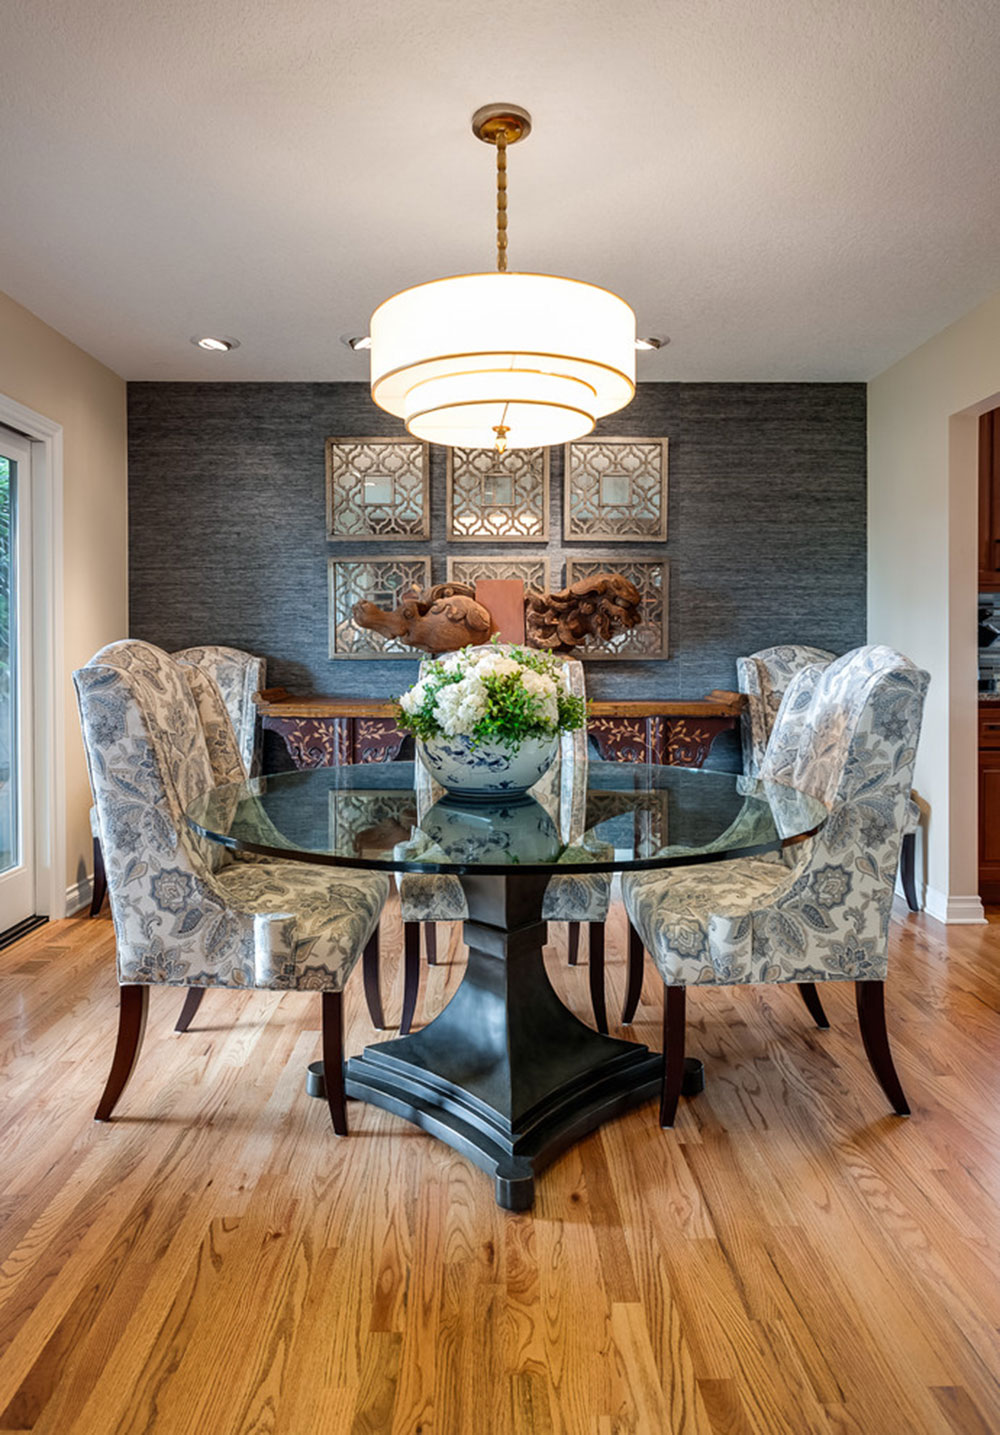 Ways To Make Your Home Look Expensive9 How To Make Your Home Look Expensive